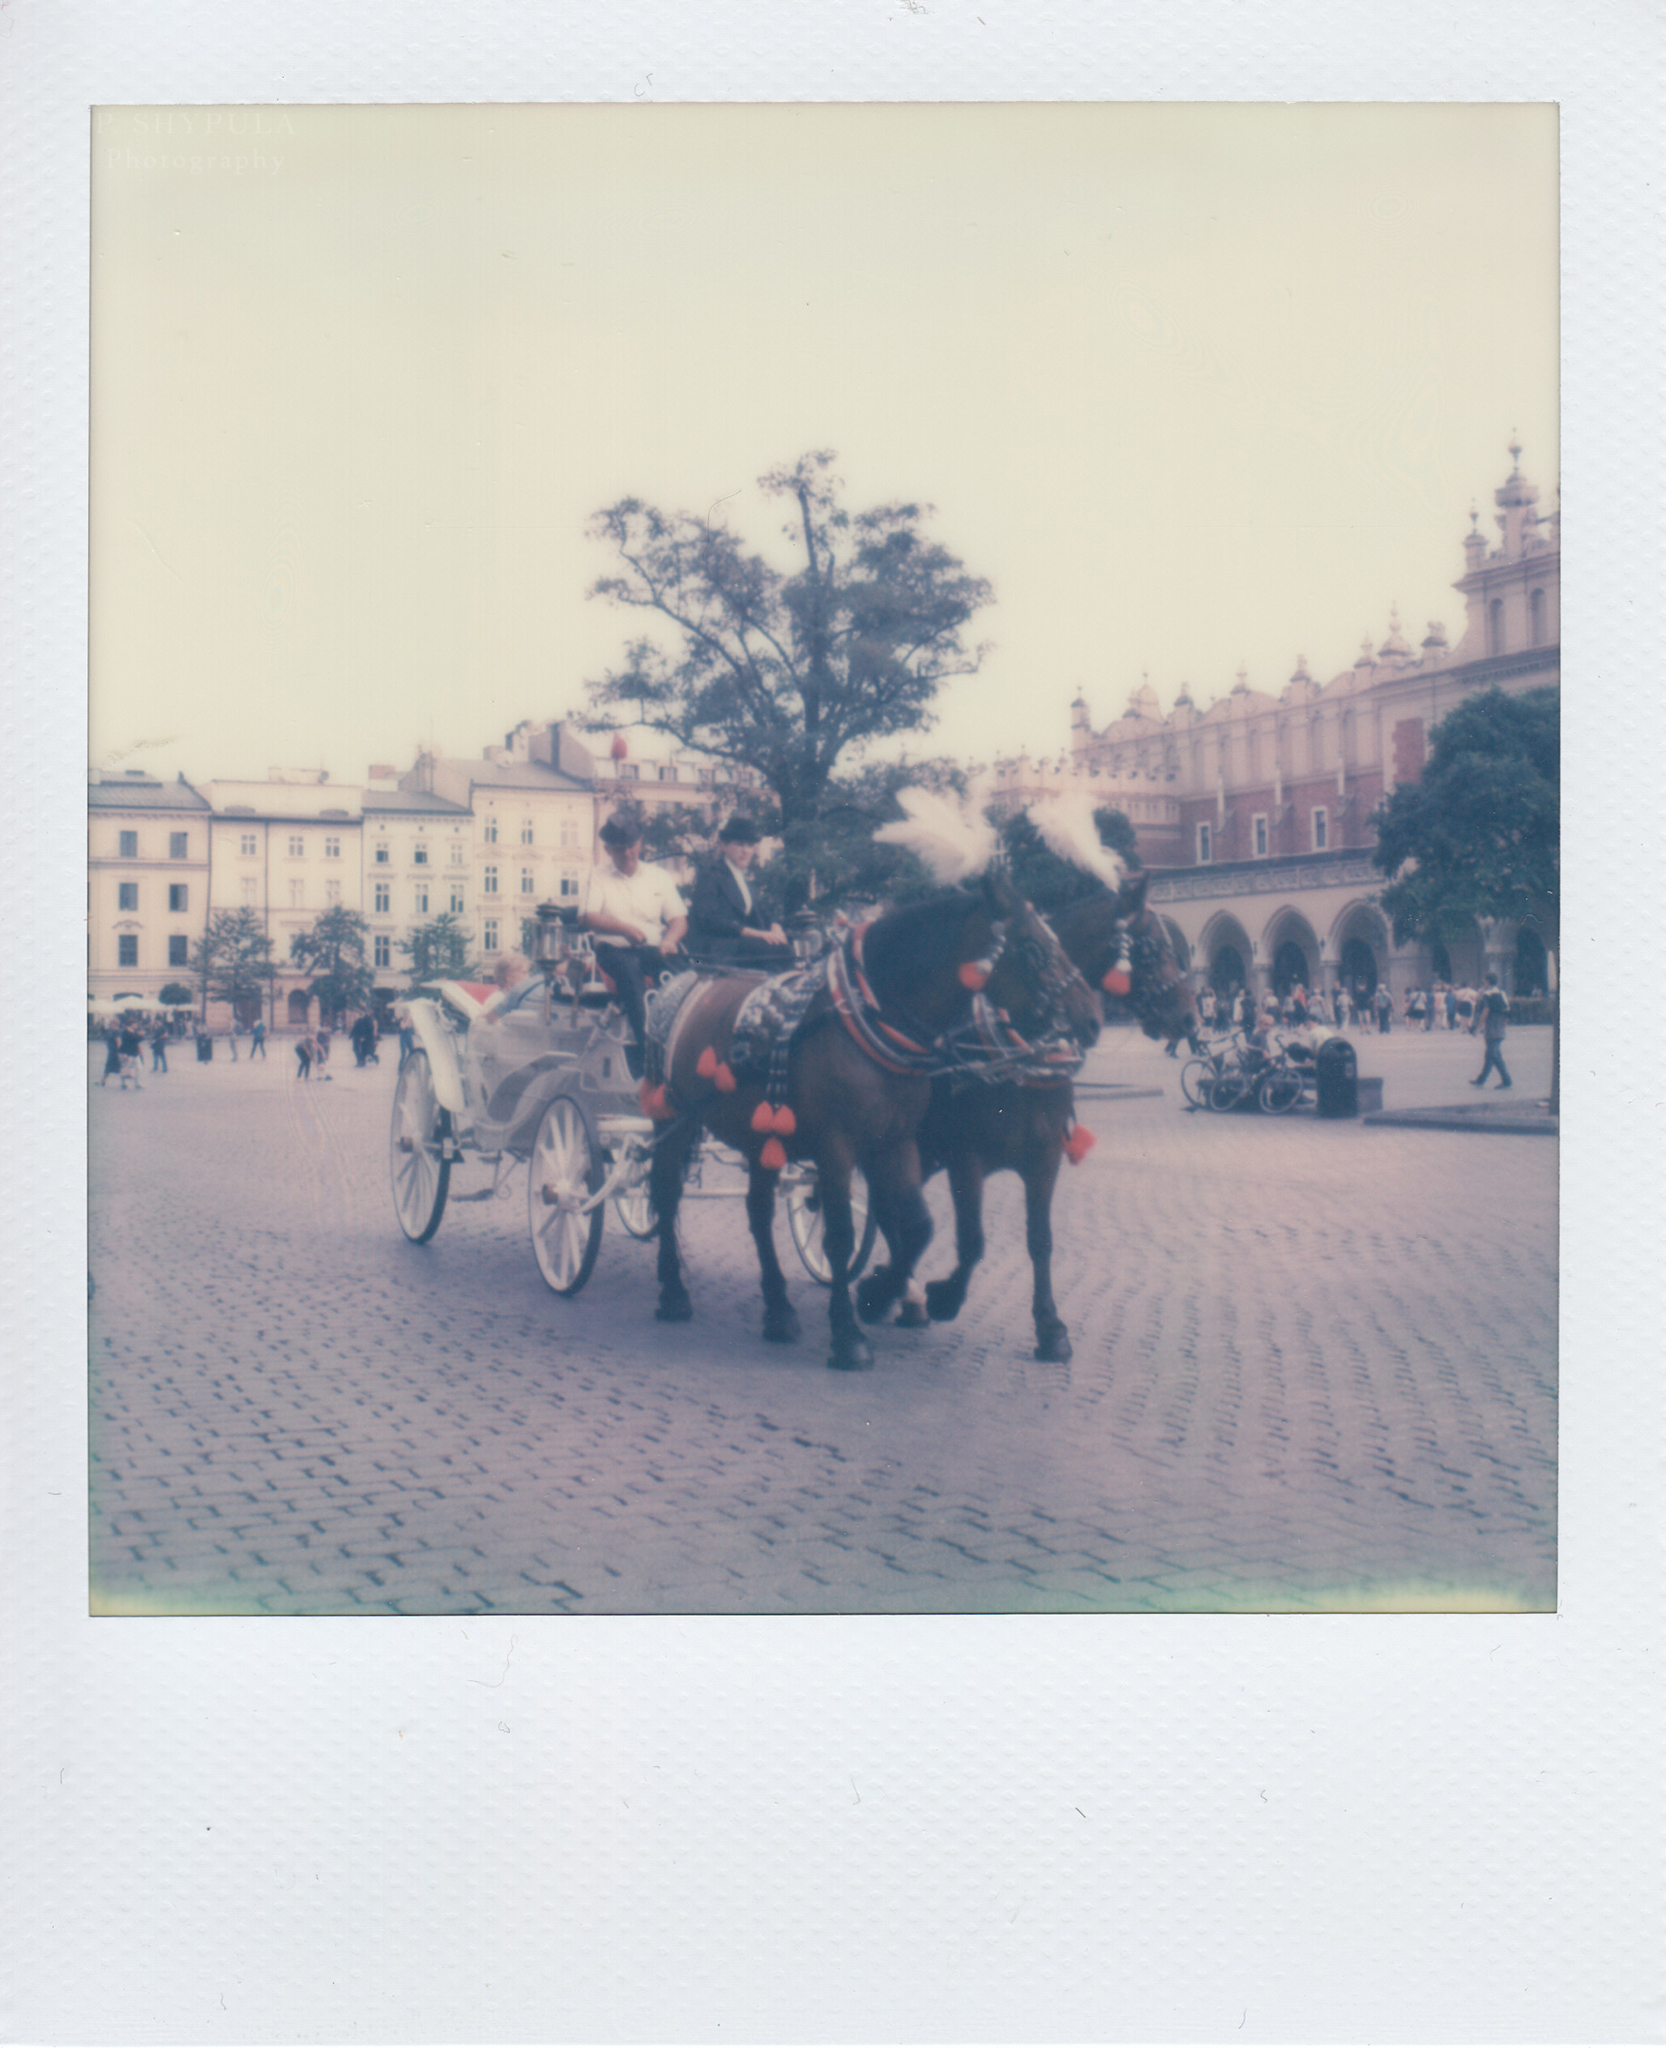 Horse drawn carriage in Krakow